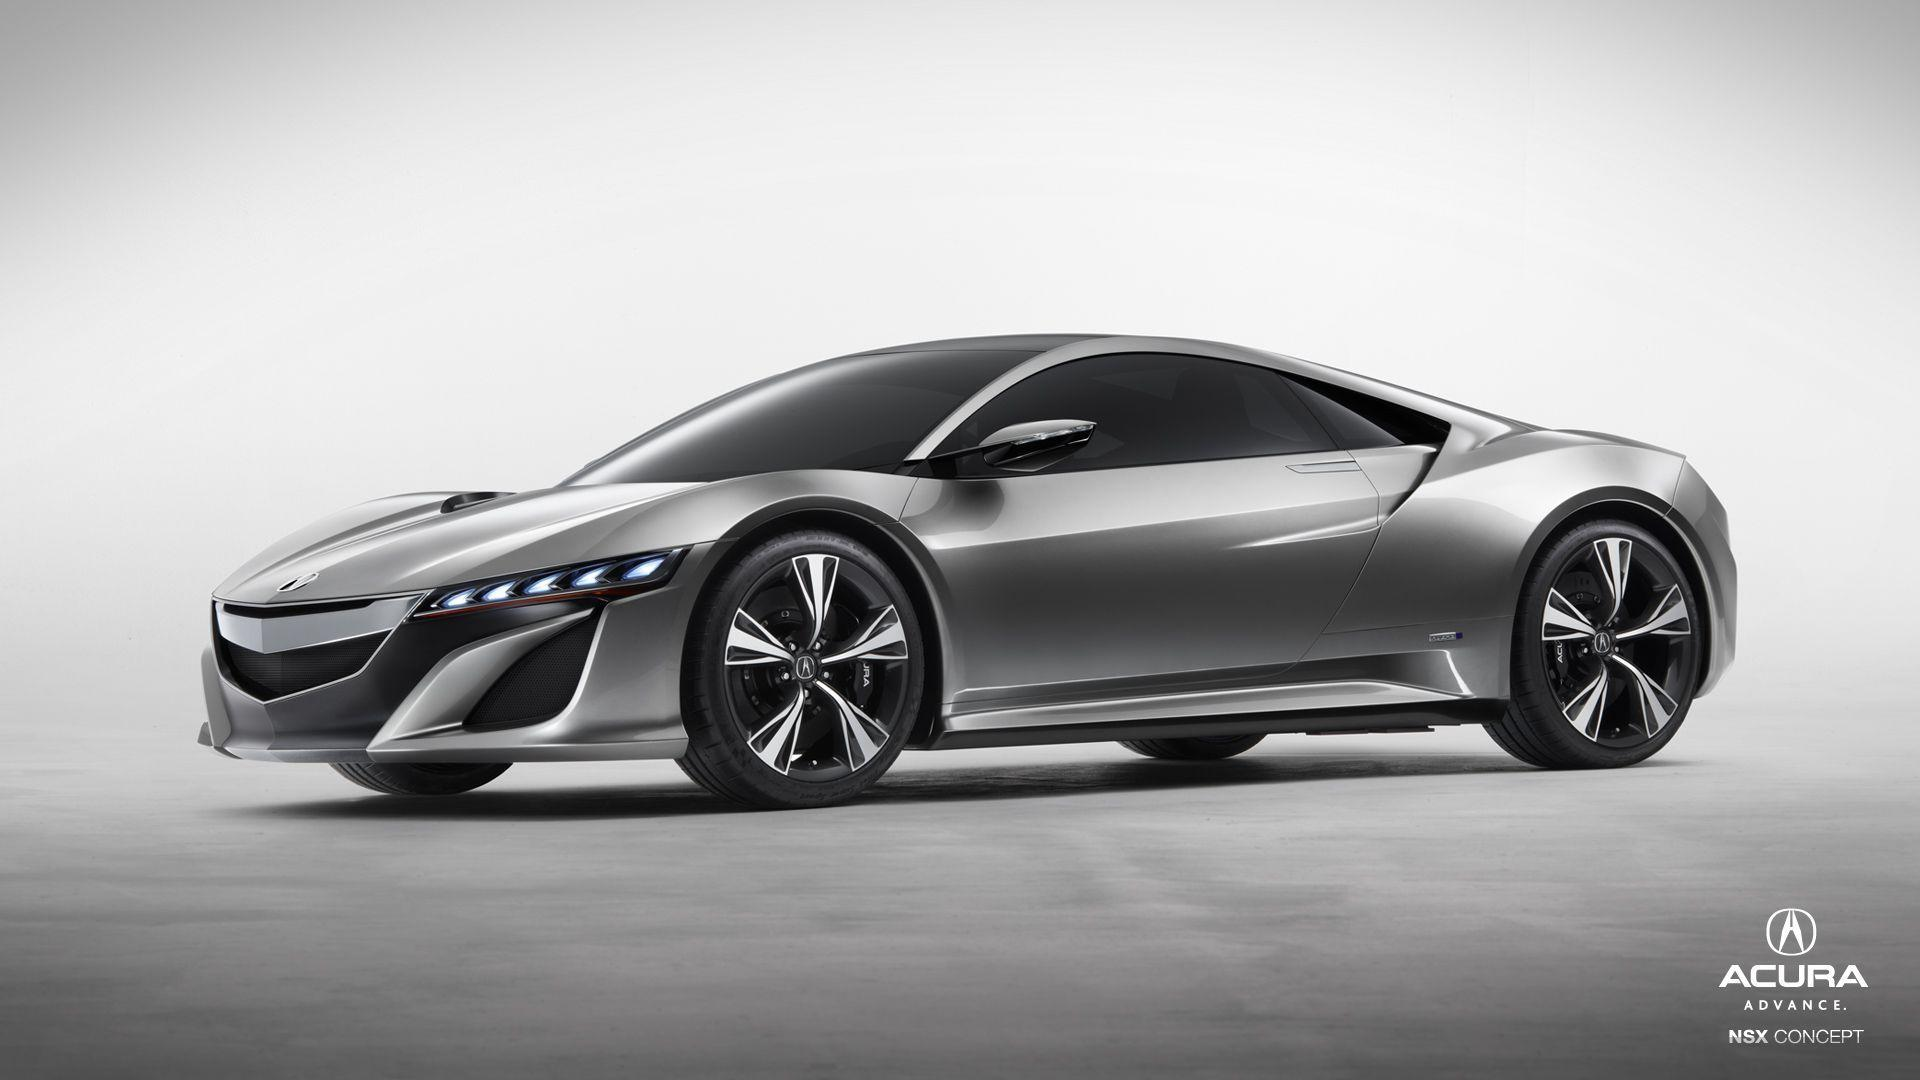 Acura NSX Wallpaper - WallpaperSafari